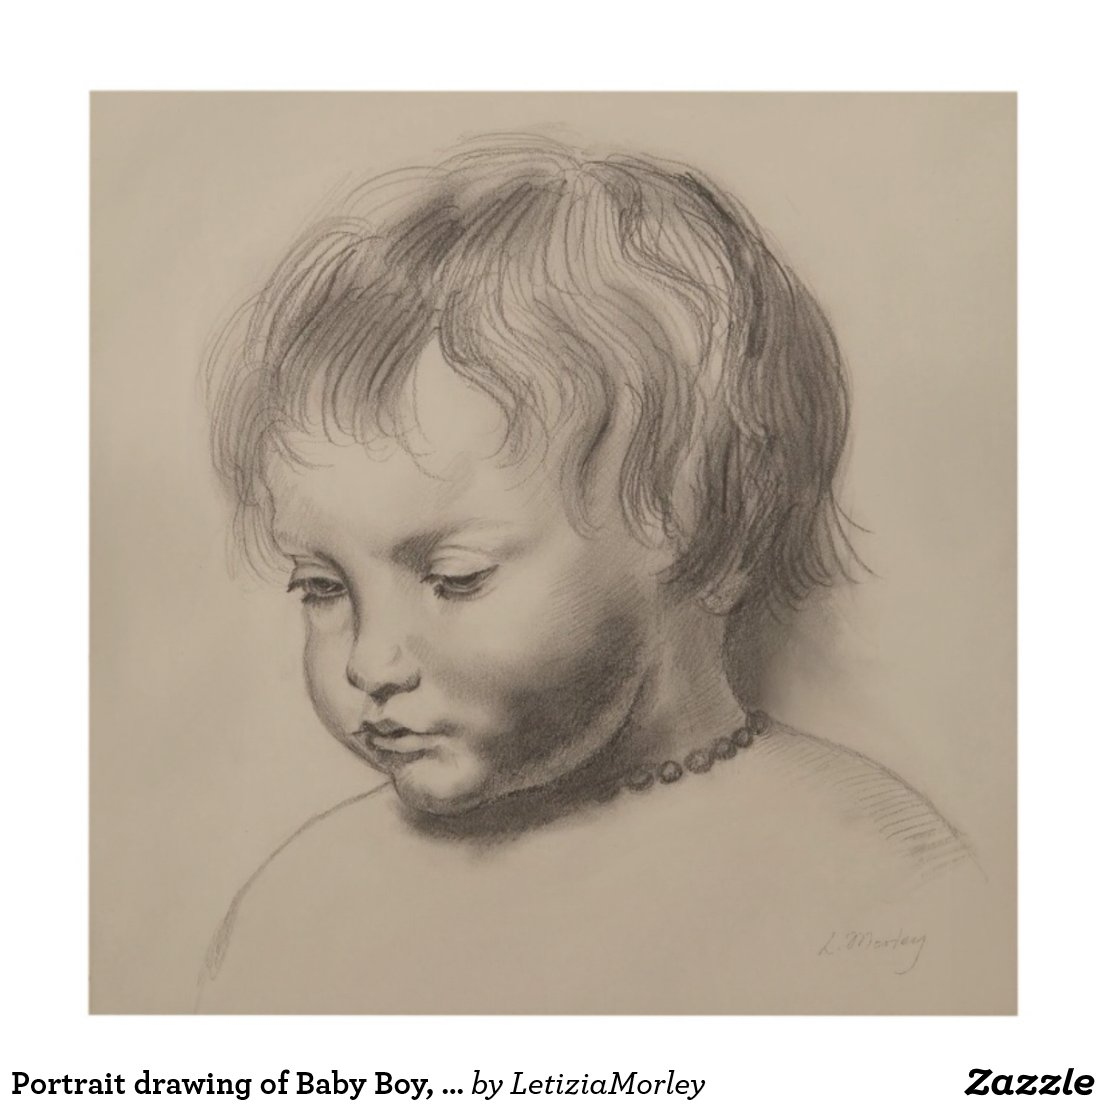 Portrait drawing of Baby Boy, style of Rubens